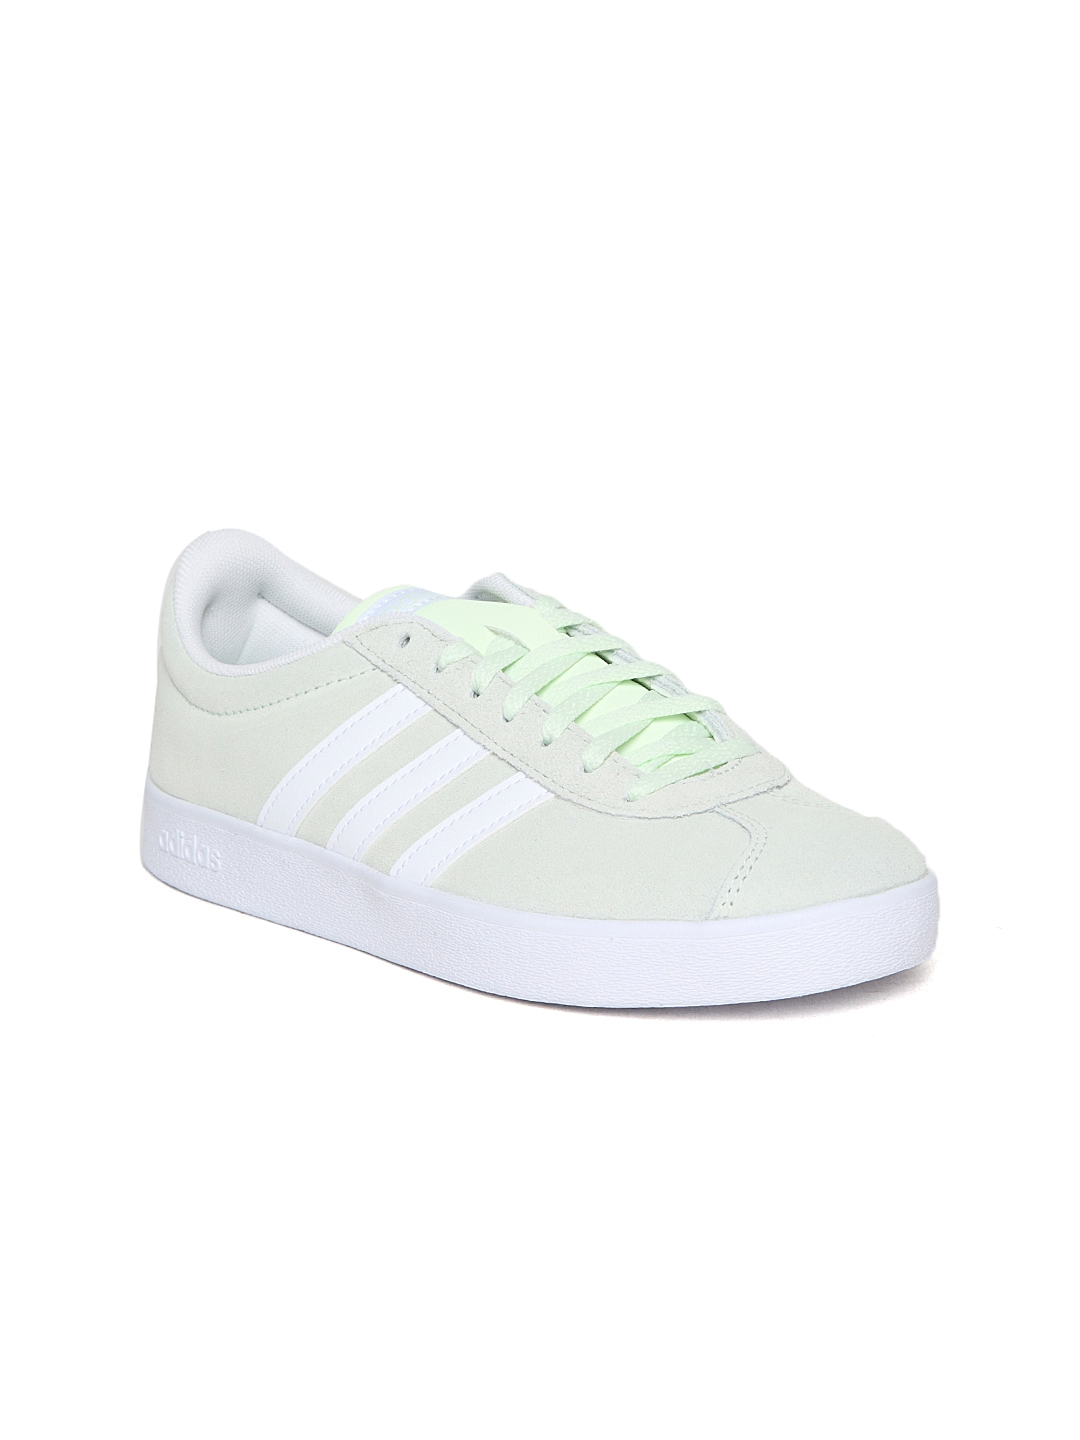 ba00ab4a7bcc6e Buy ADIDAS Women Green VL COURT 2.0 Sneakers - Casual Shoes for ...